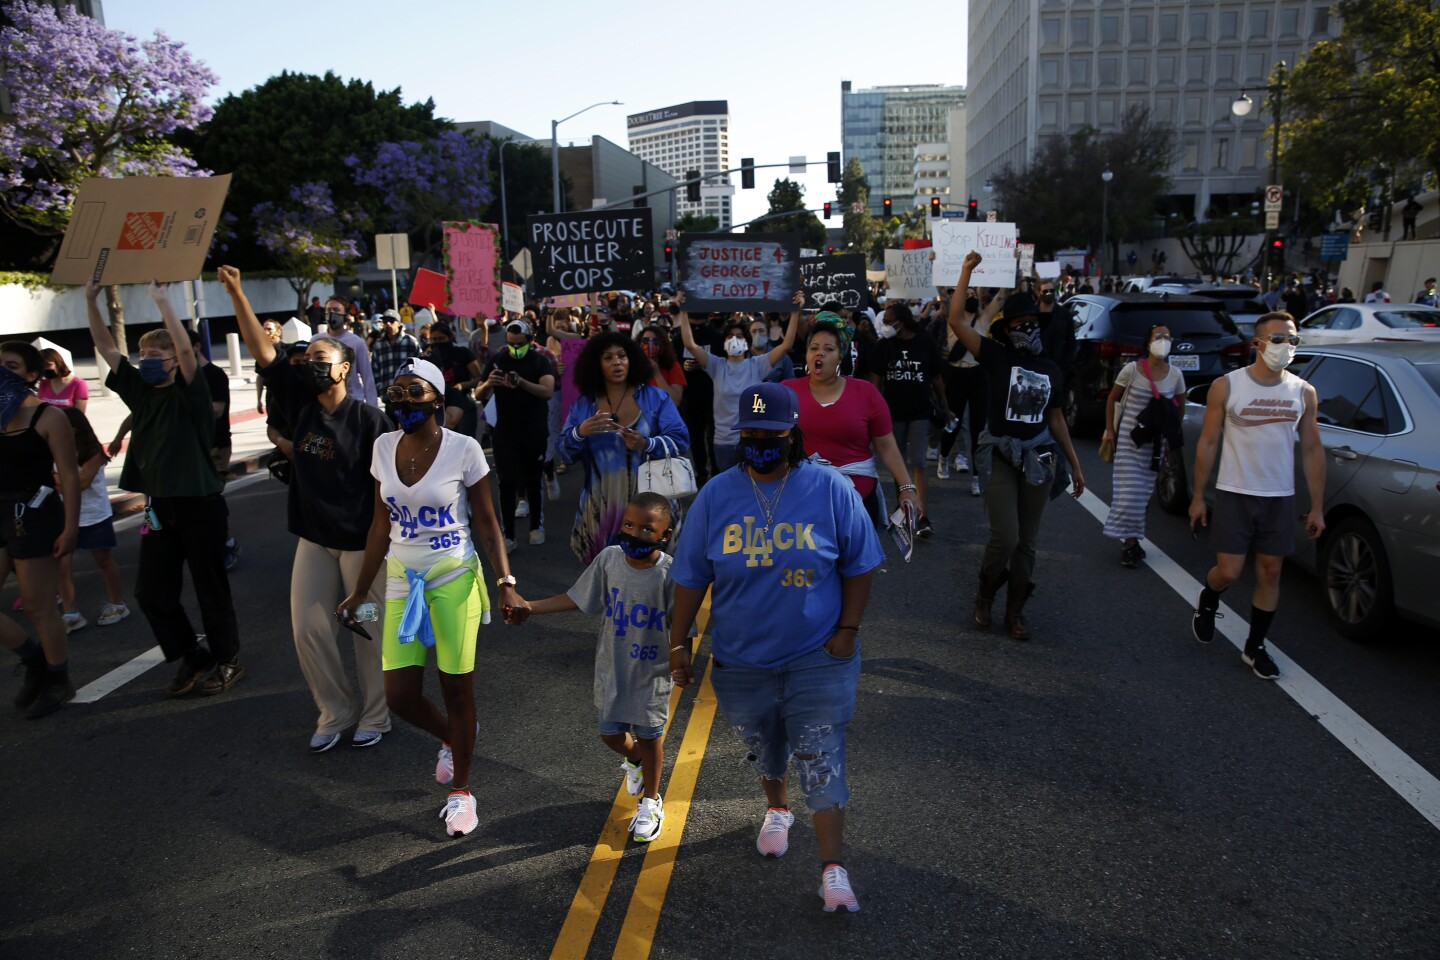 Families take to the streets during a Black Lives Matter protest in downtown Los Angeles. | Dania Maxwell / Los Angeles Times via Getty Images